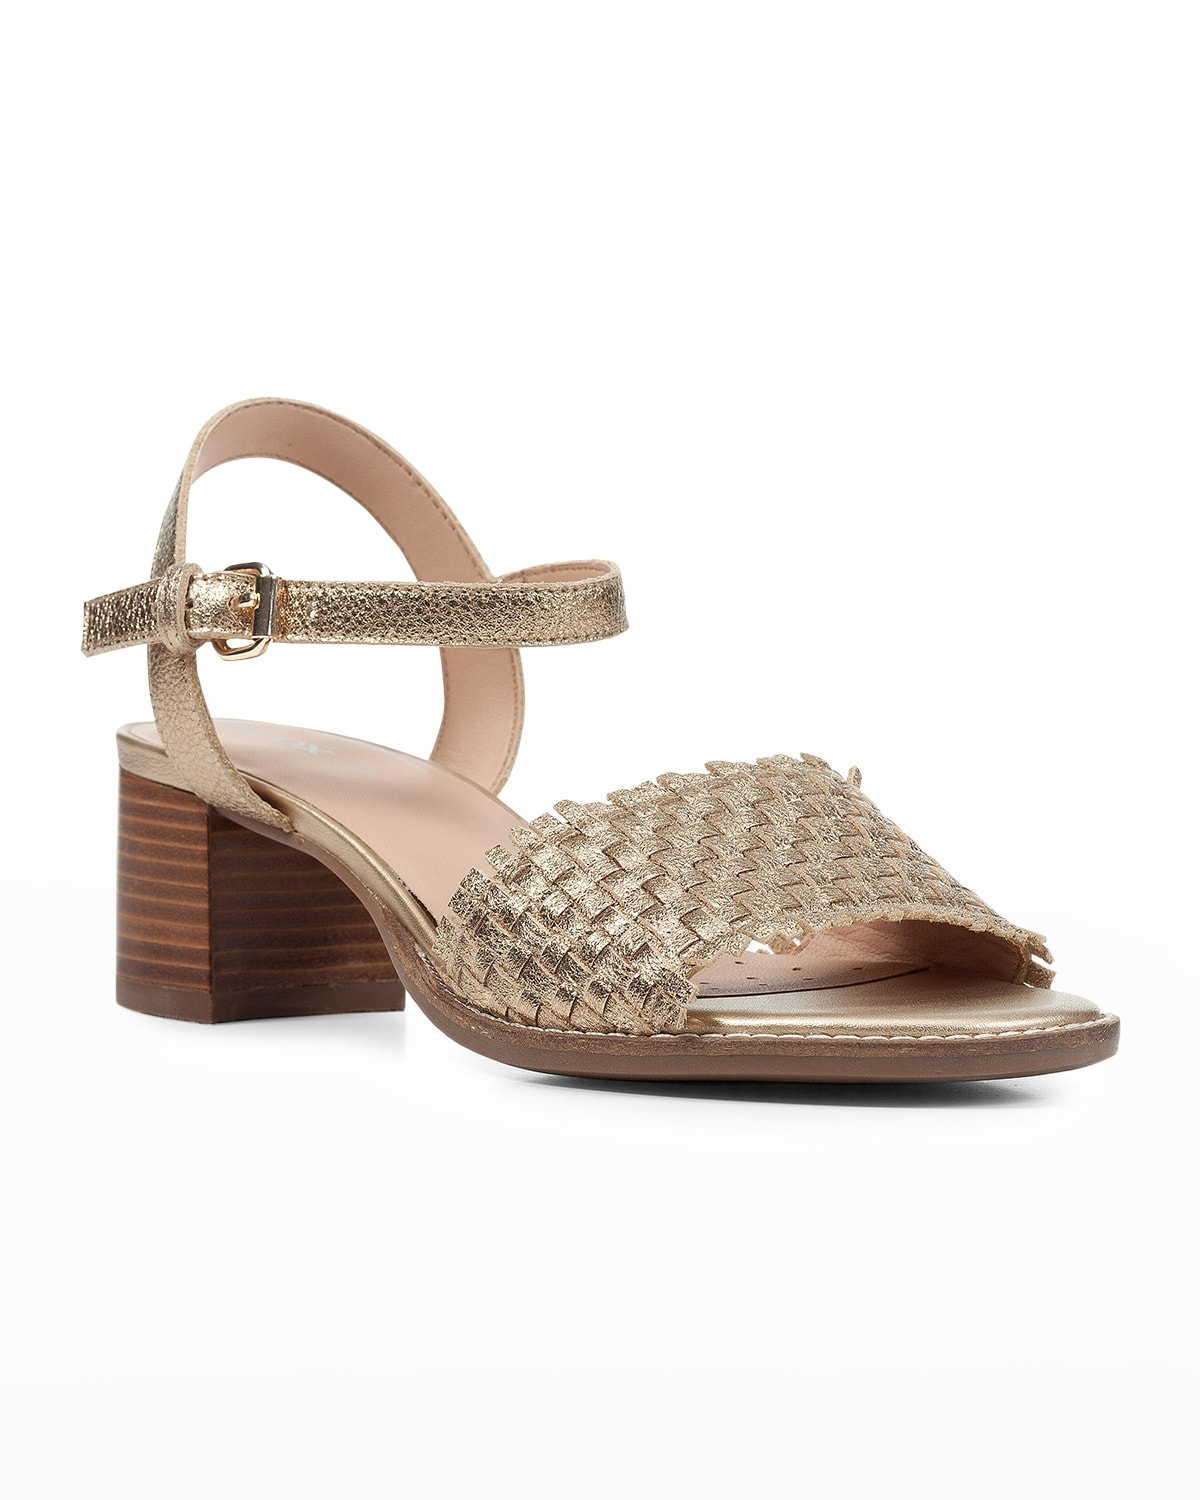 Metallic Woven Ankle-Strap Sandals